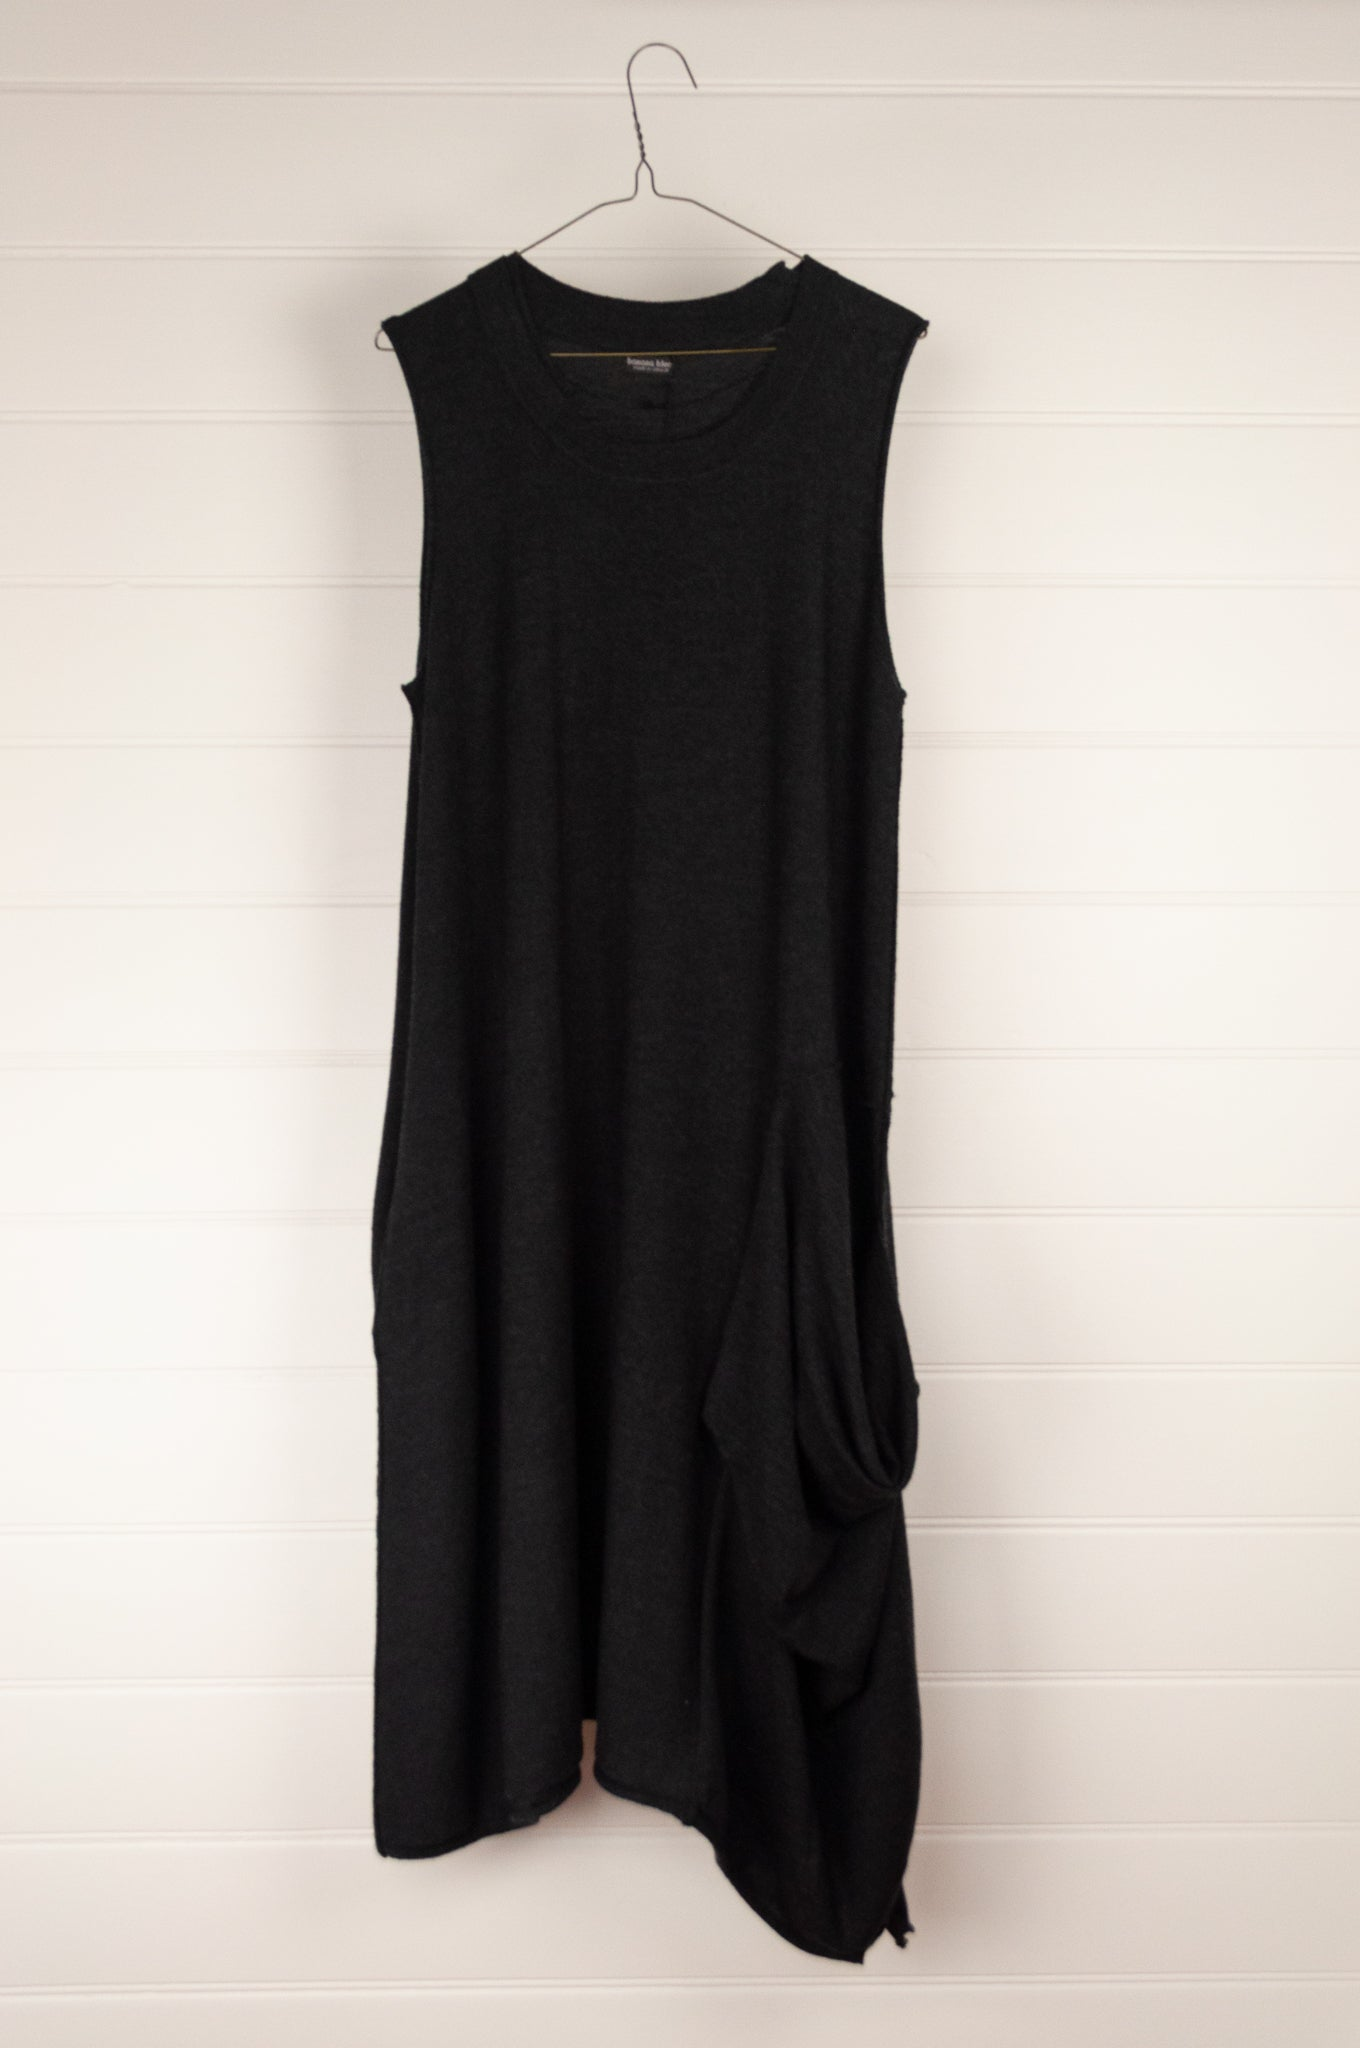 Banana Blue charcoal superfine merino wool pinafore camisole dress with pockets and folded panel detail.